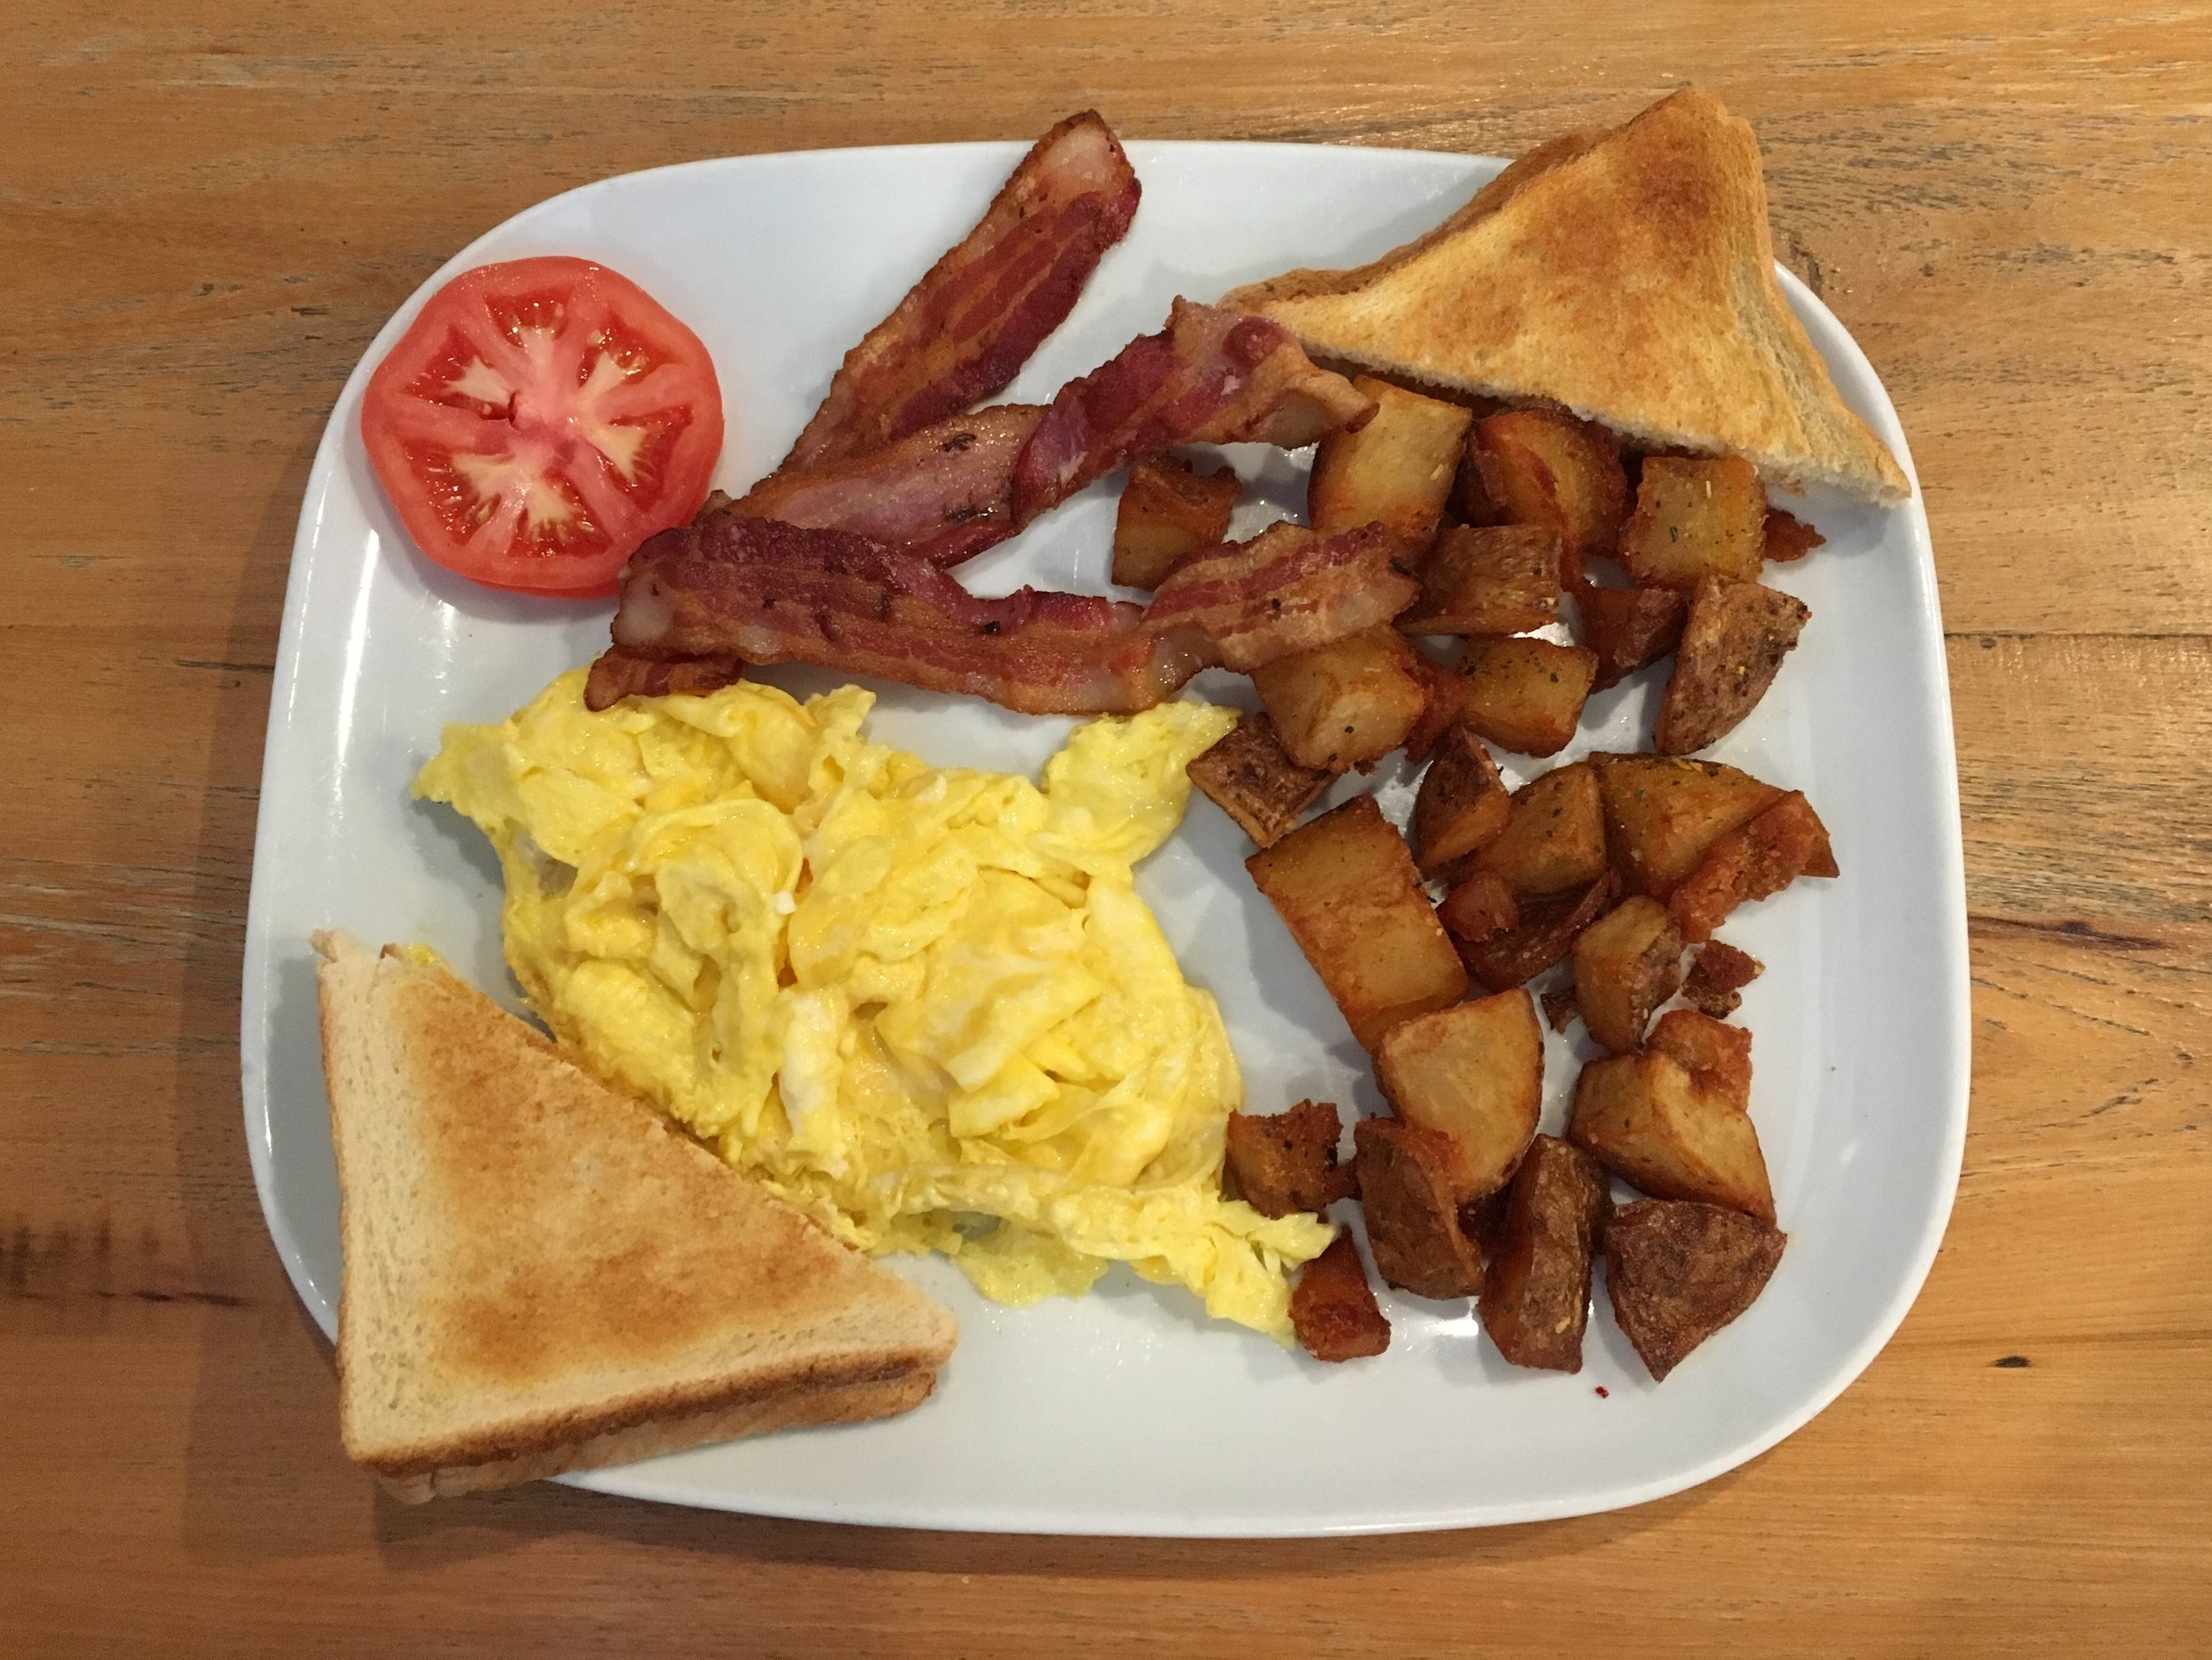 Jian's pick: Frankie's Original Breakfast